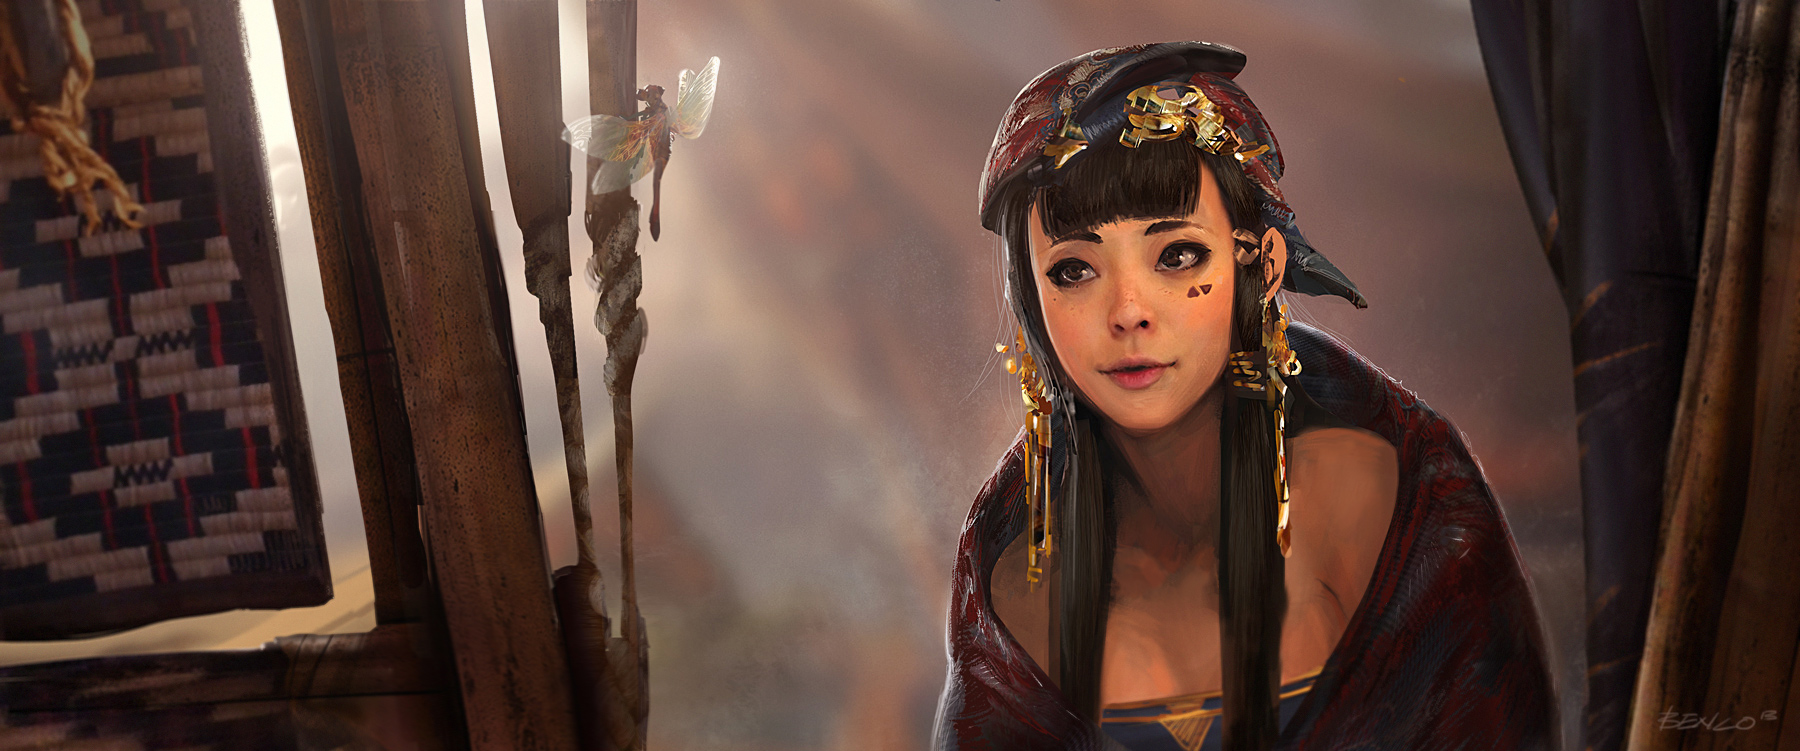 Les illustrations du digital painter Ben Lo